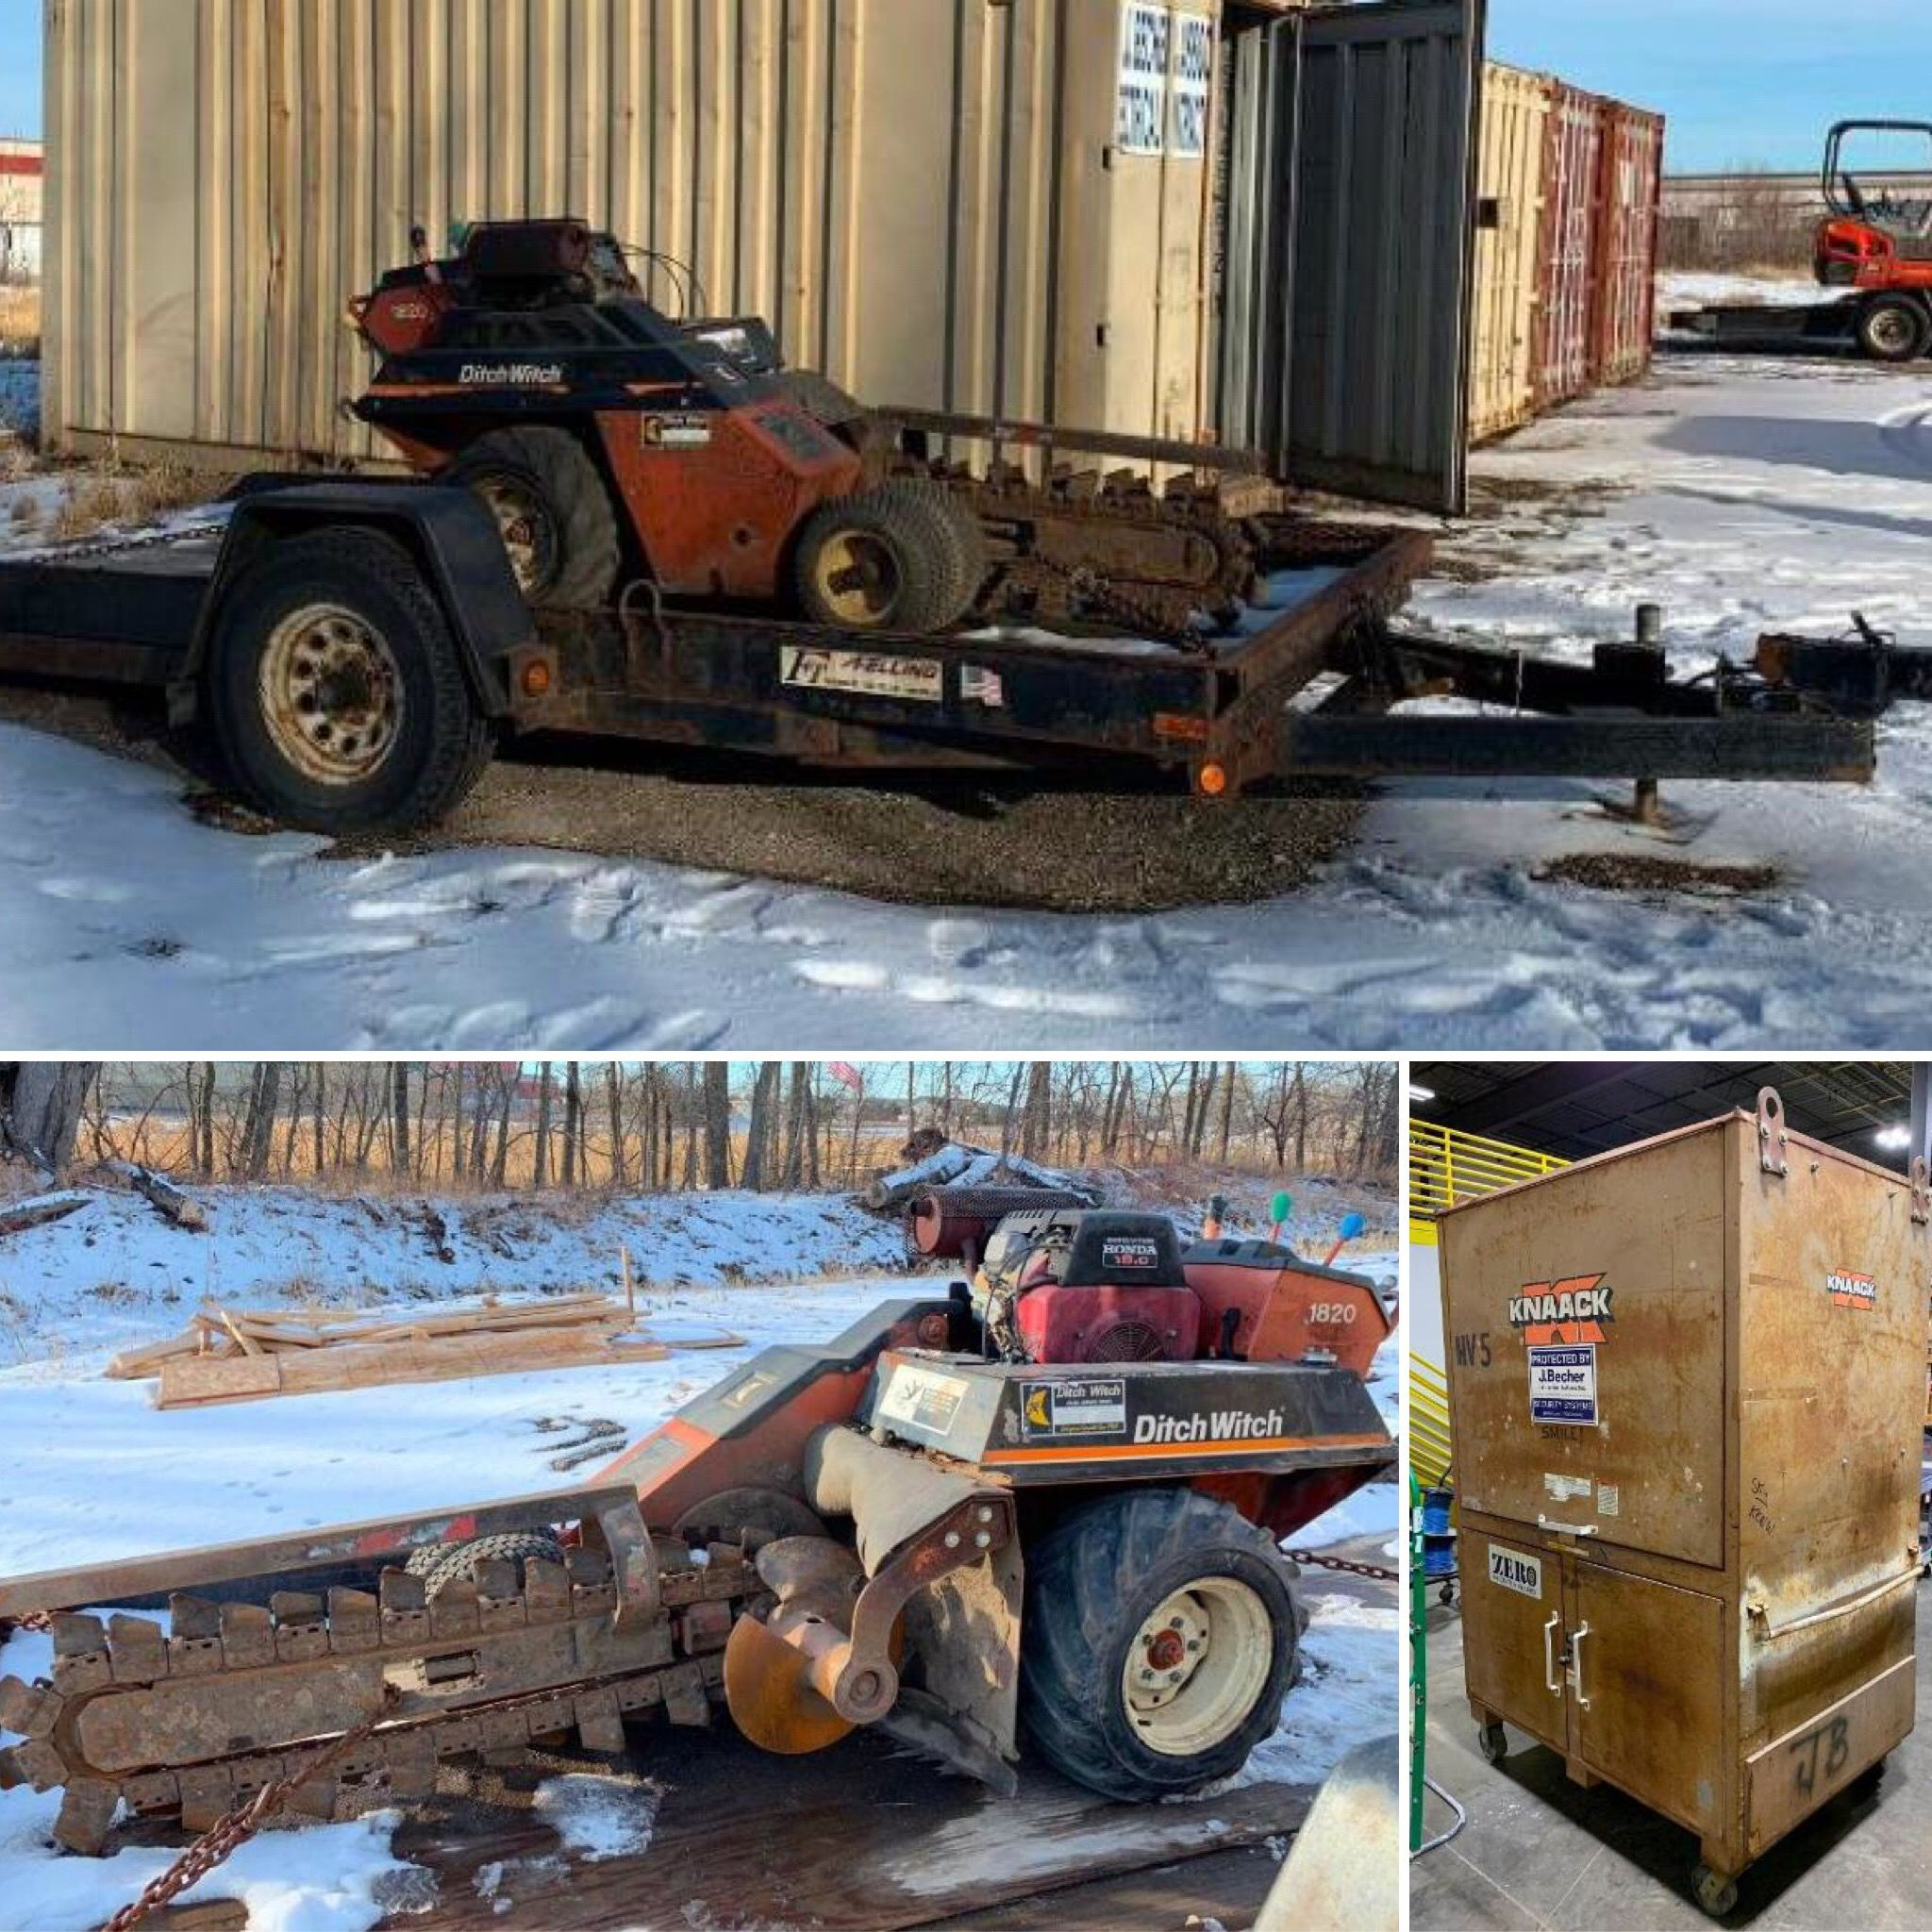 hight resolution of auction complete check out this feller tilt trailer ditch witch 1820 and knaack gang box bid online today at www bid 2 buy com naapro auctionswork